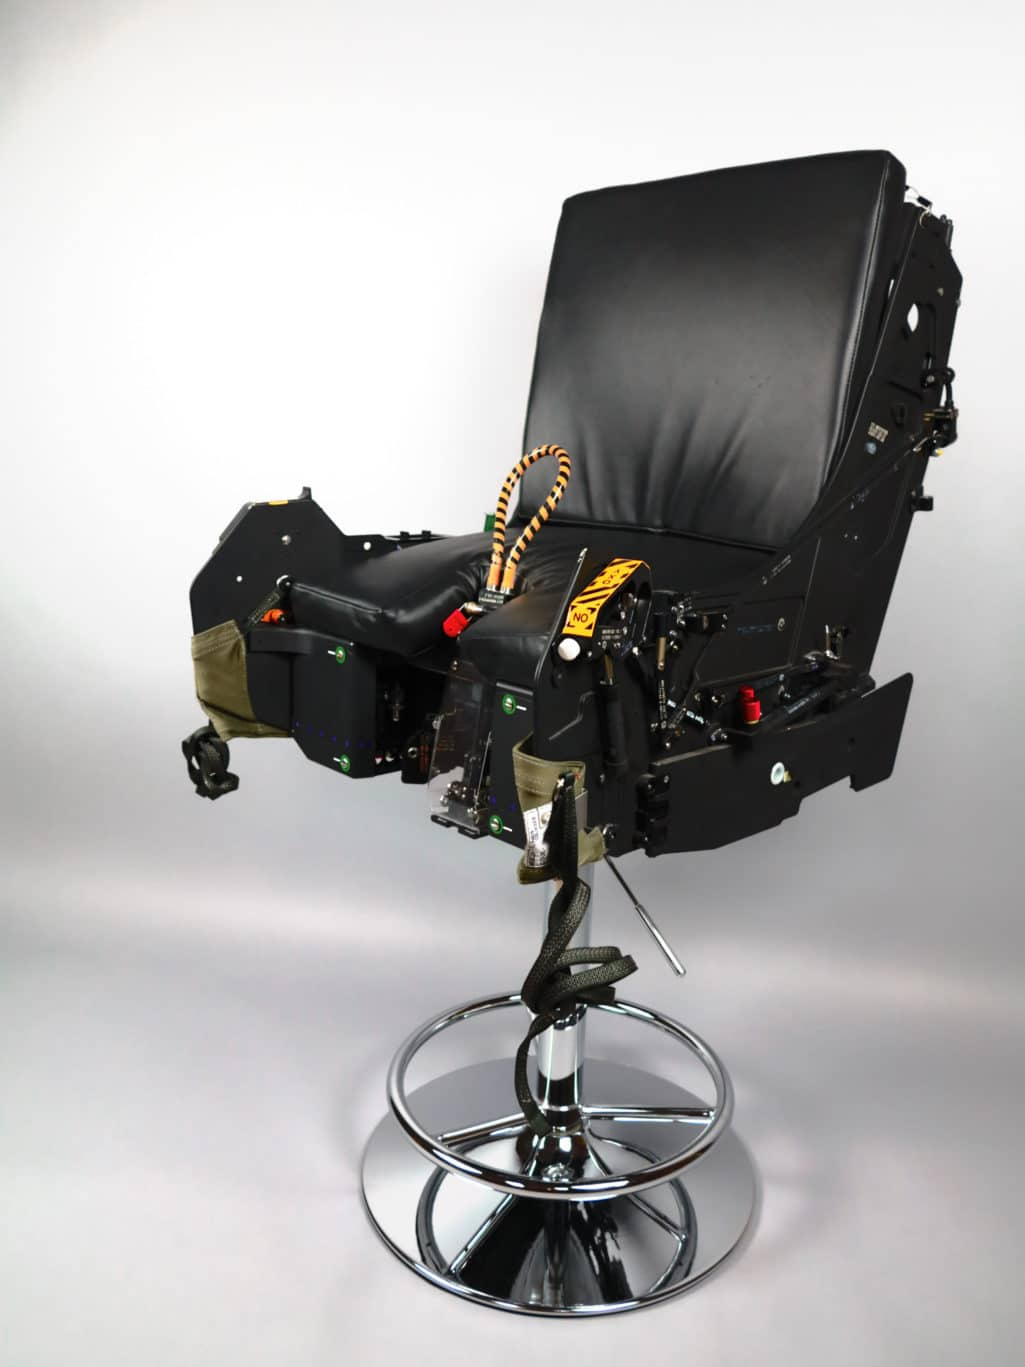 Martin Baker MK 16A Eurofighter Typhoon Ejection Seat